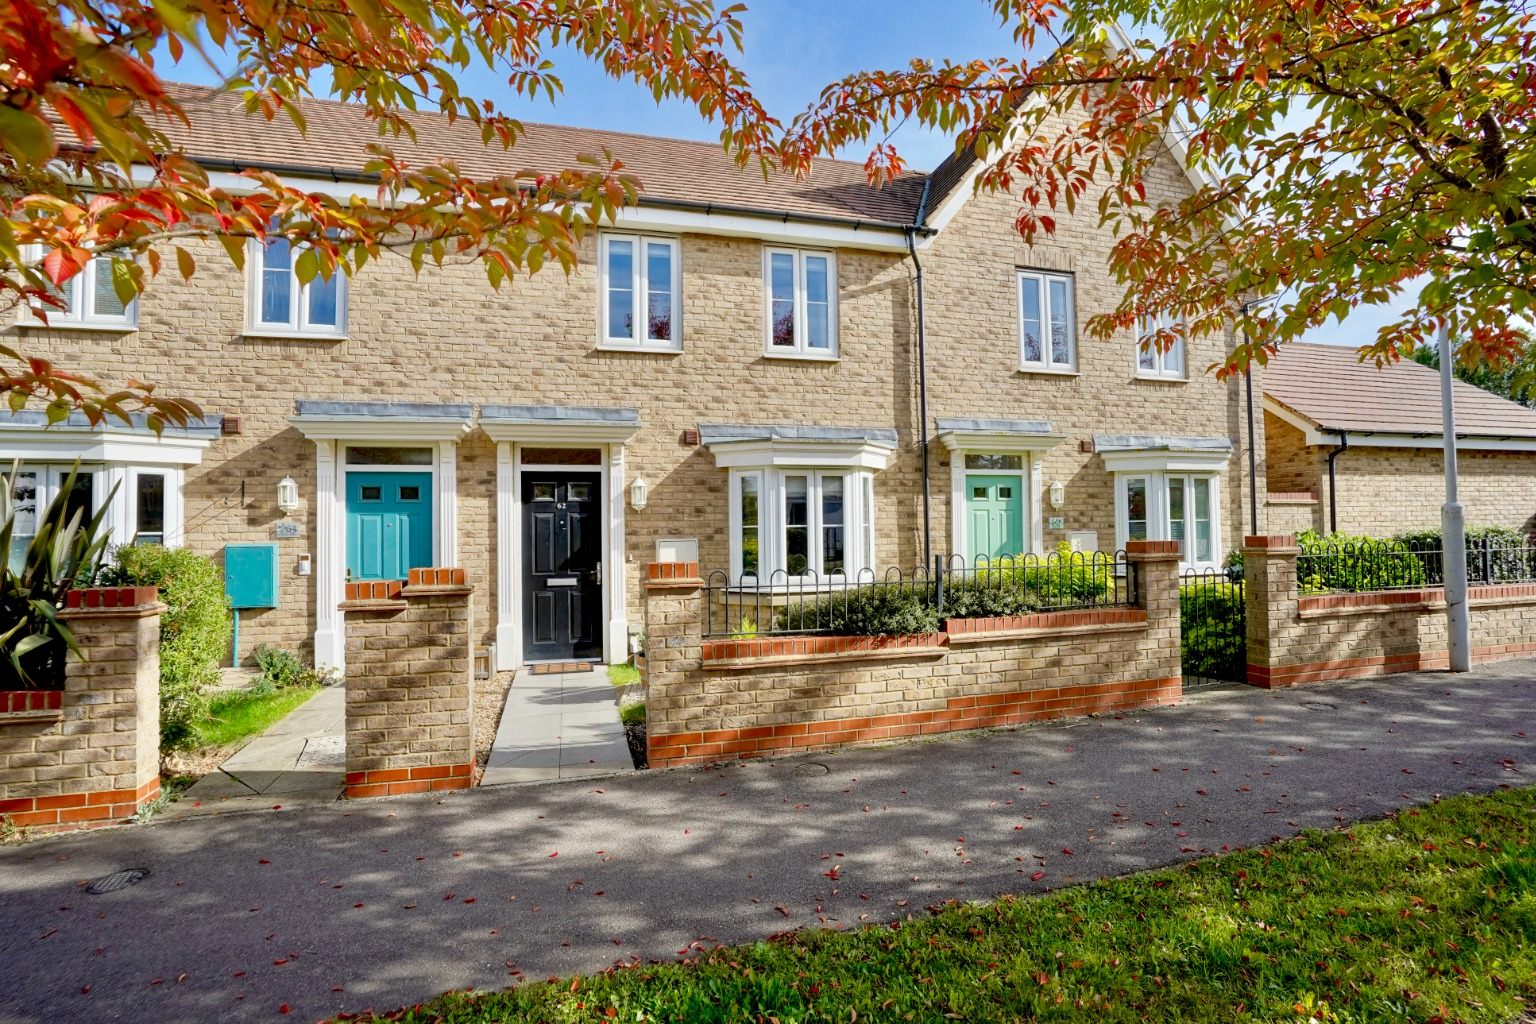 3 bed terraced house for sale in Stone Hill, St. Neots, PE19